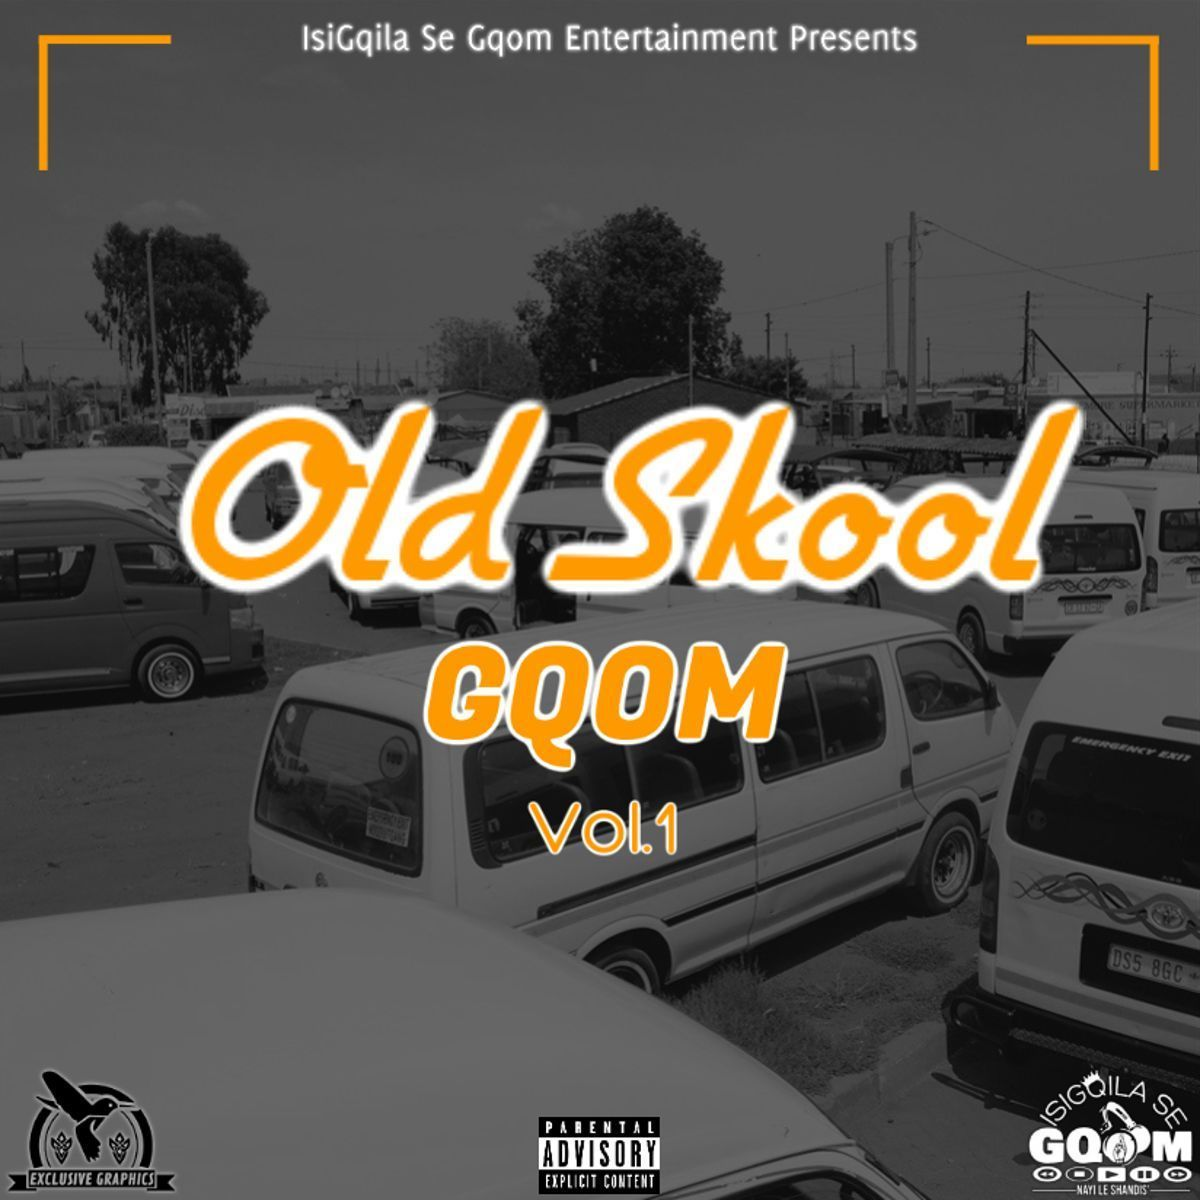 Va Old Skool Gqom Vol 1 In 2020 Old Skool Electronic Dance Music Dance Music